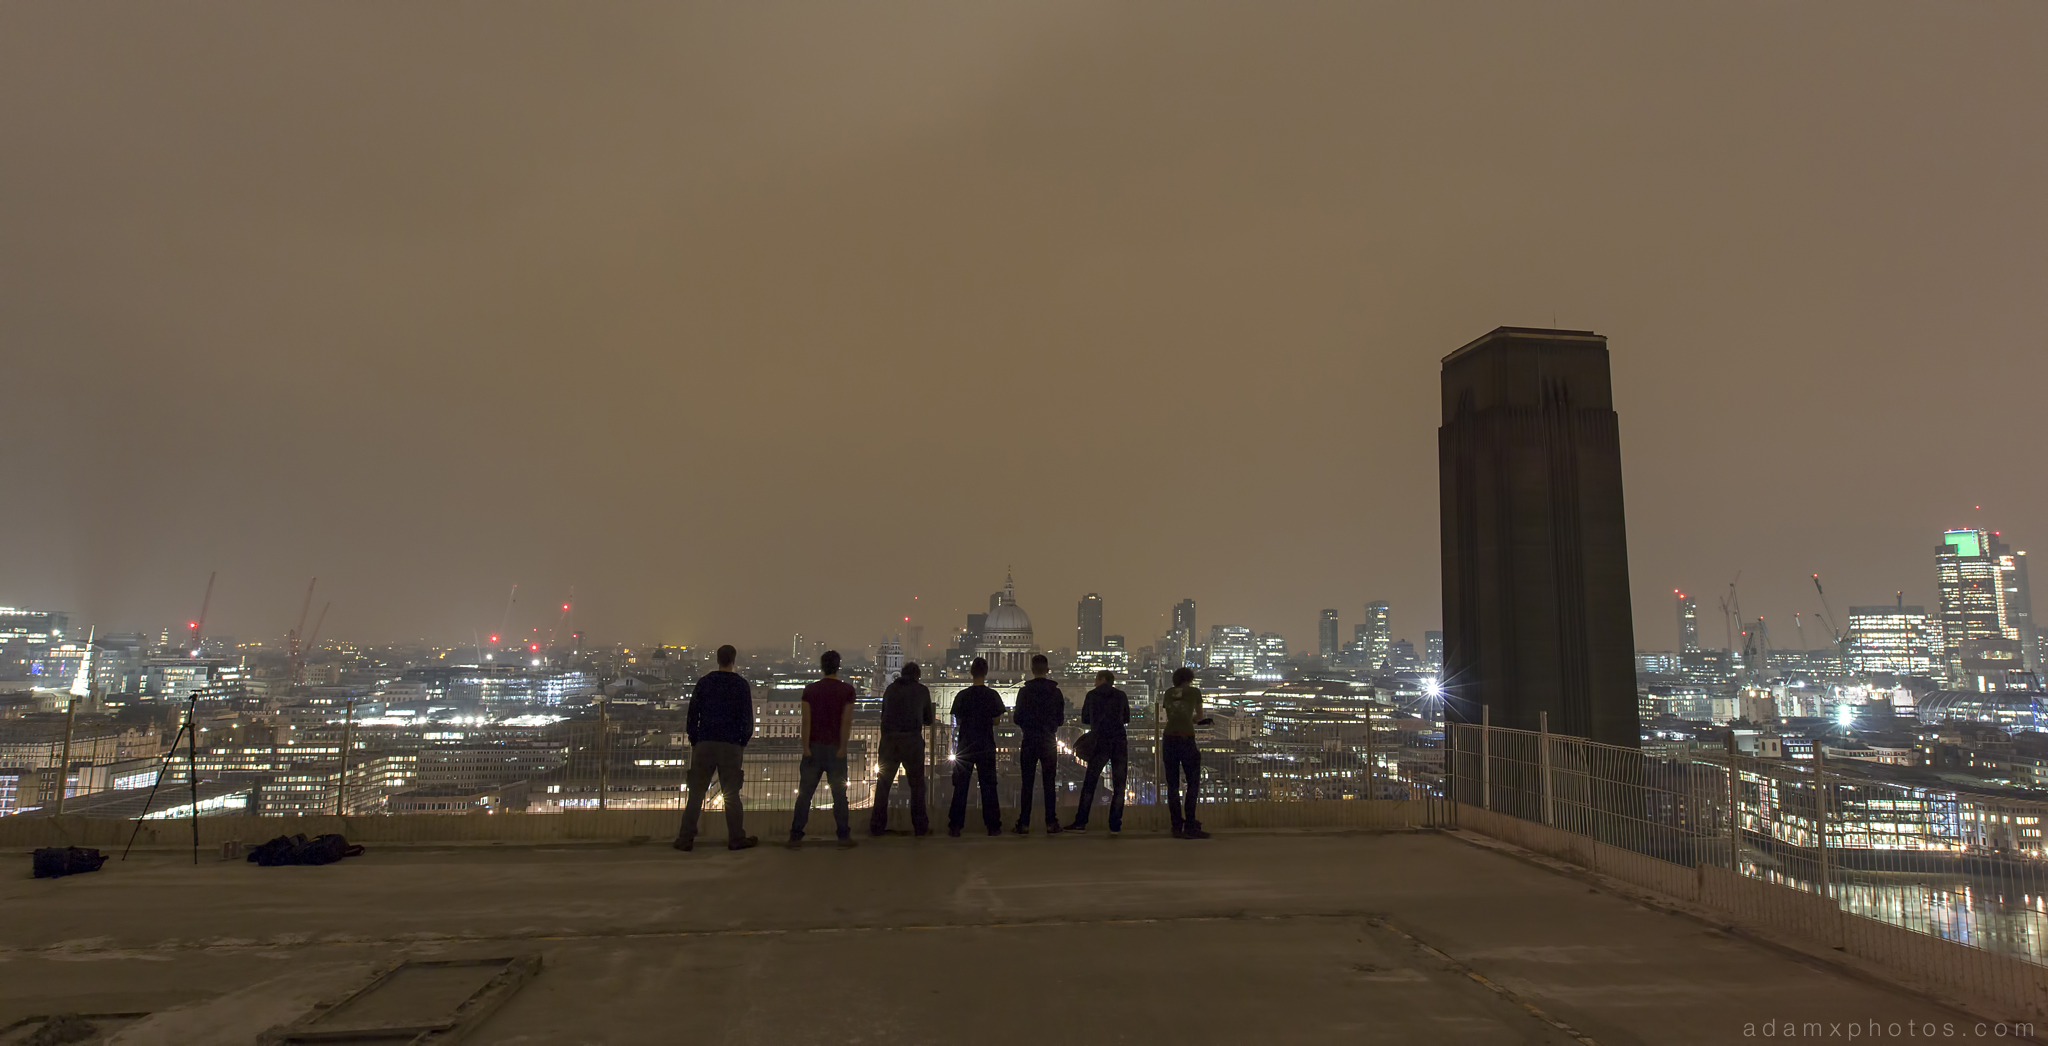 Adam X Urbex UE Urban Exploration London Rooftops High Night Photo Photography Skyline THM crane south bank thames shard walkie talkie st pails cathedral group shot team explorers